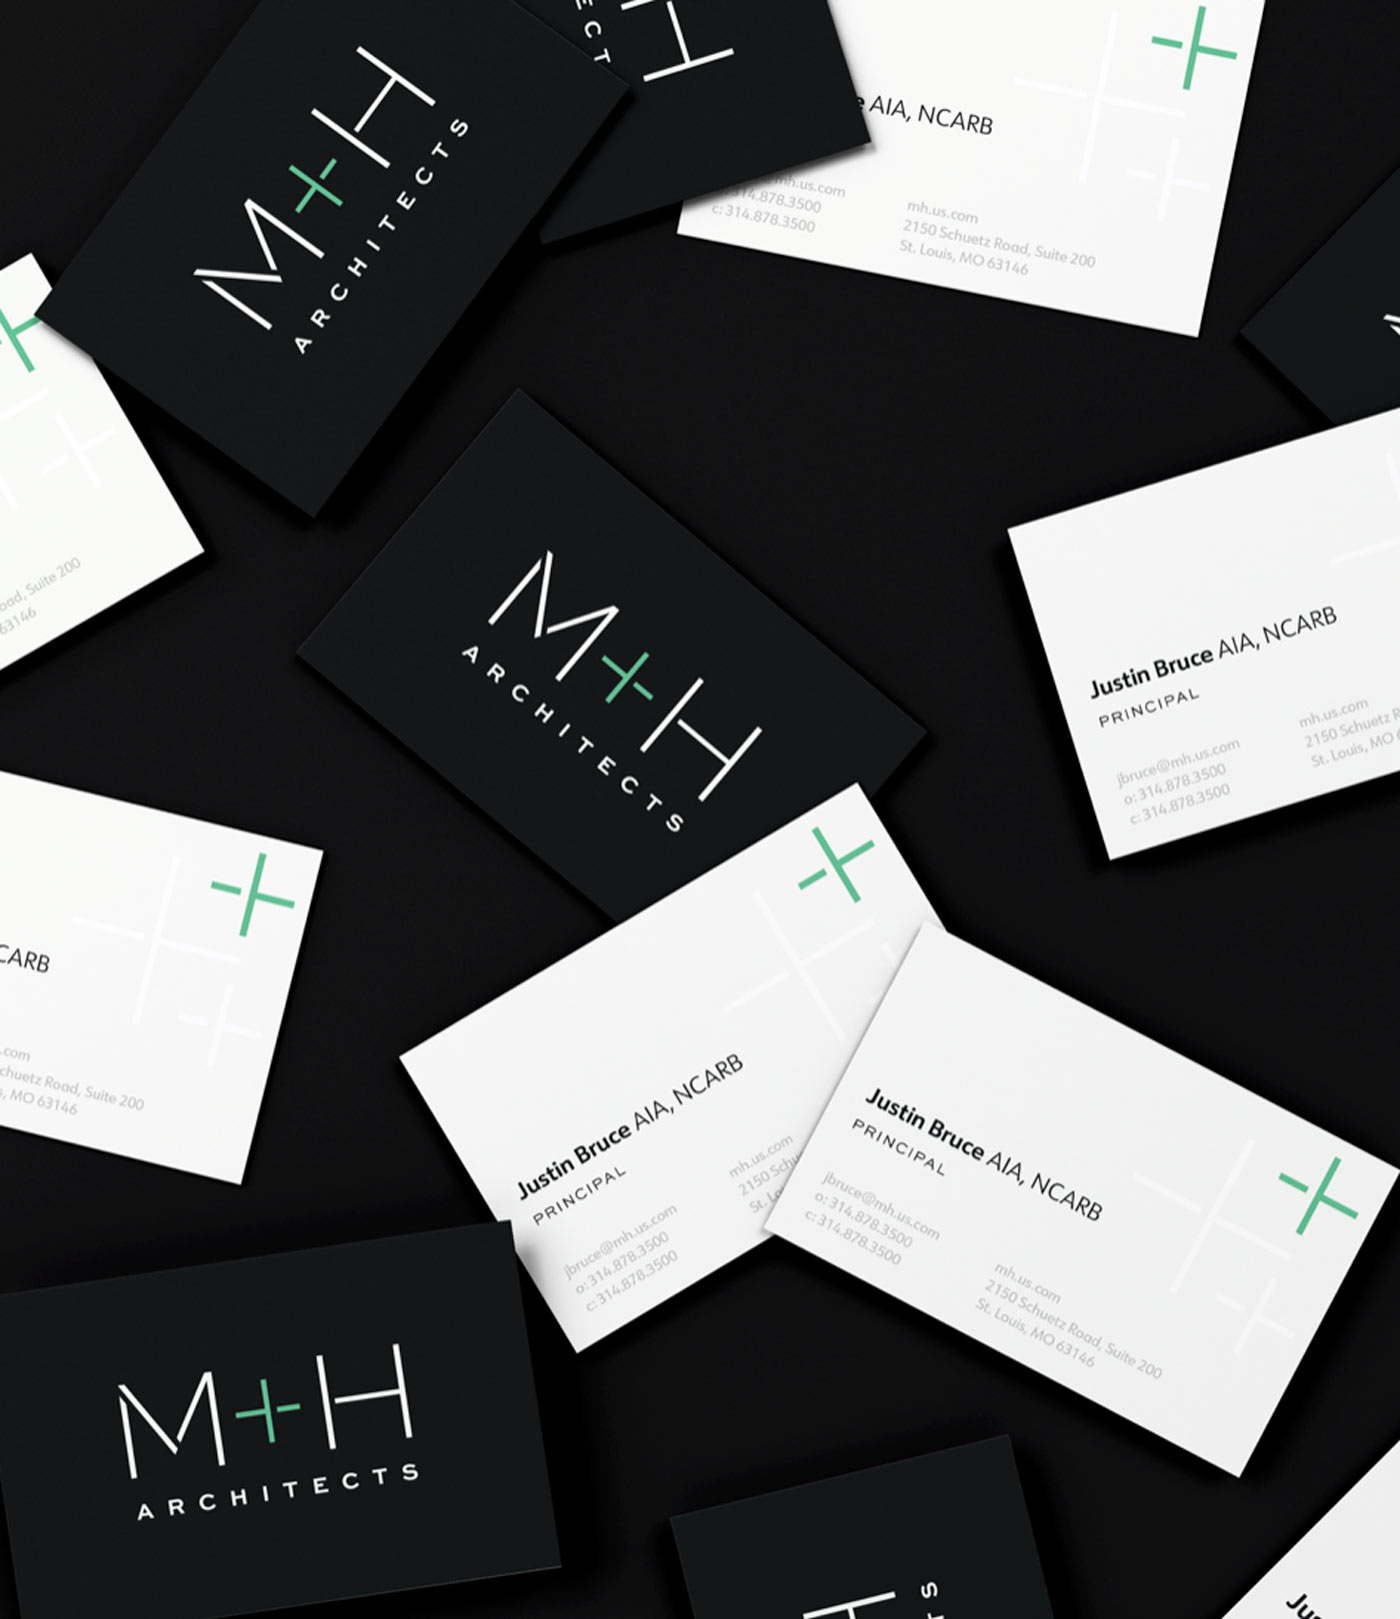 Business cards showing the new M+H Architects brand identity